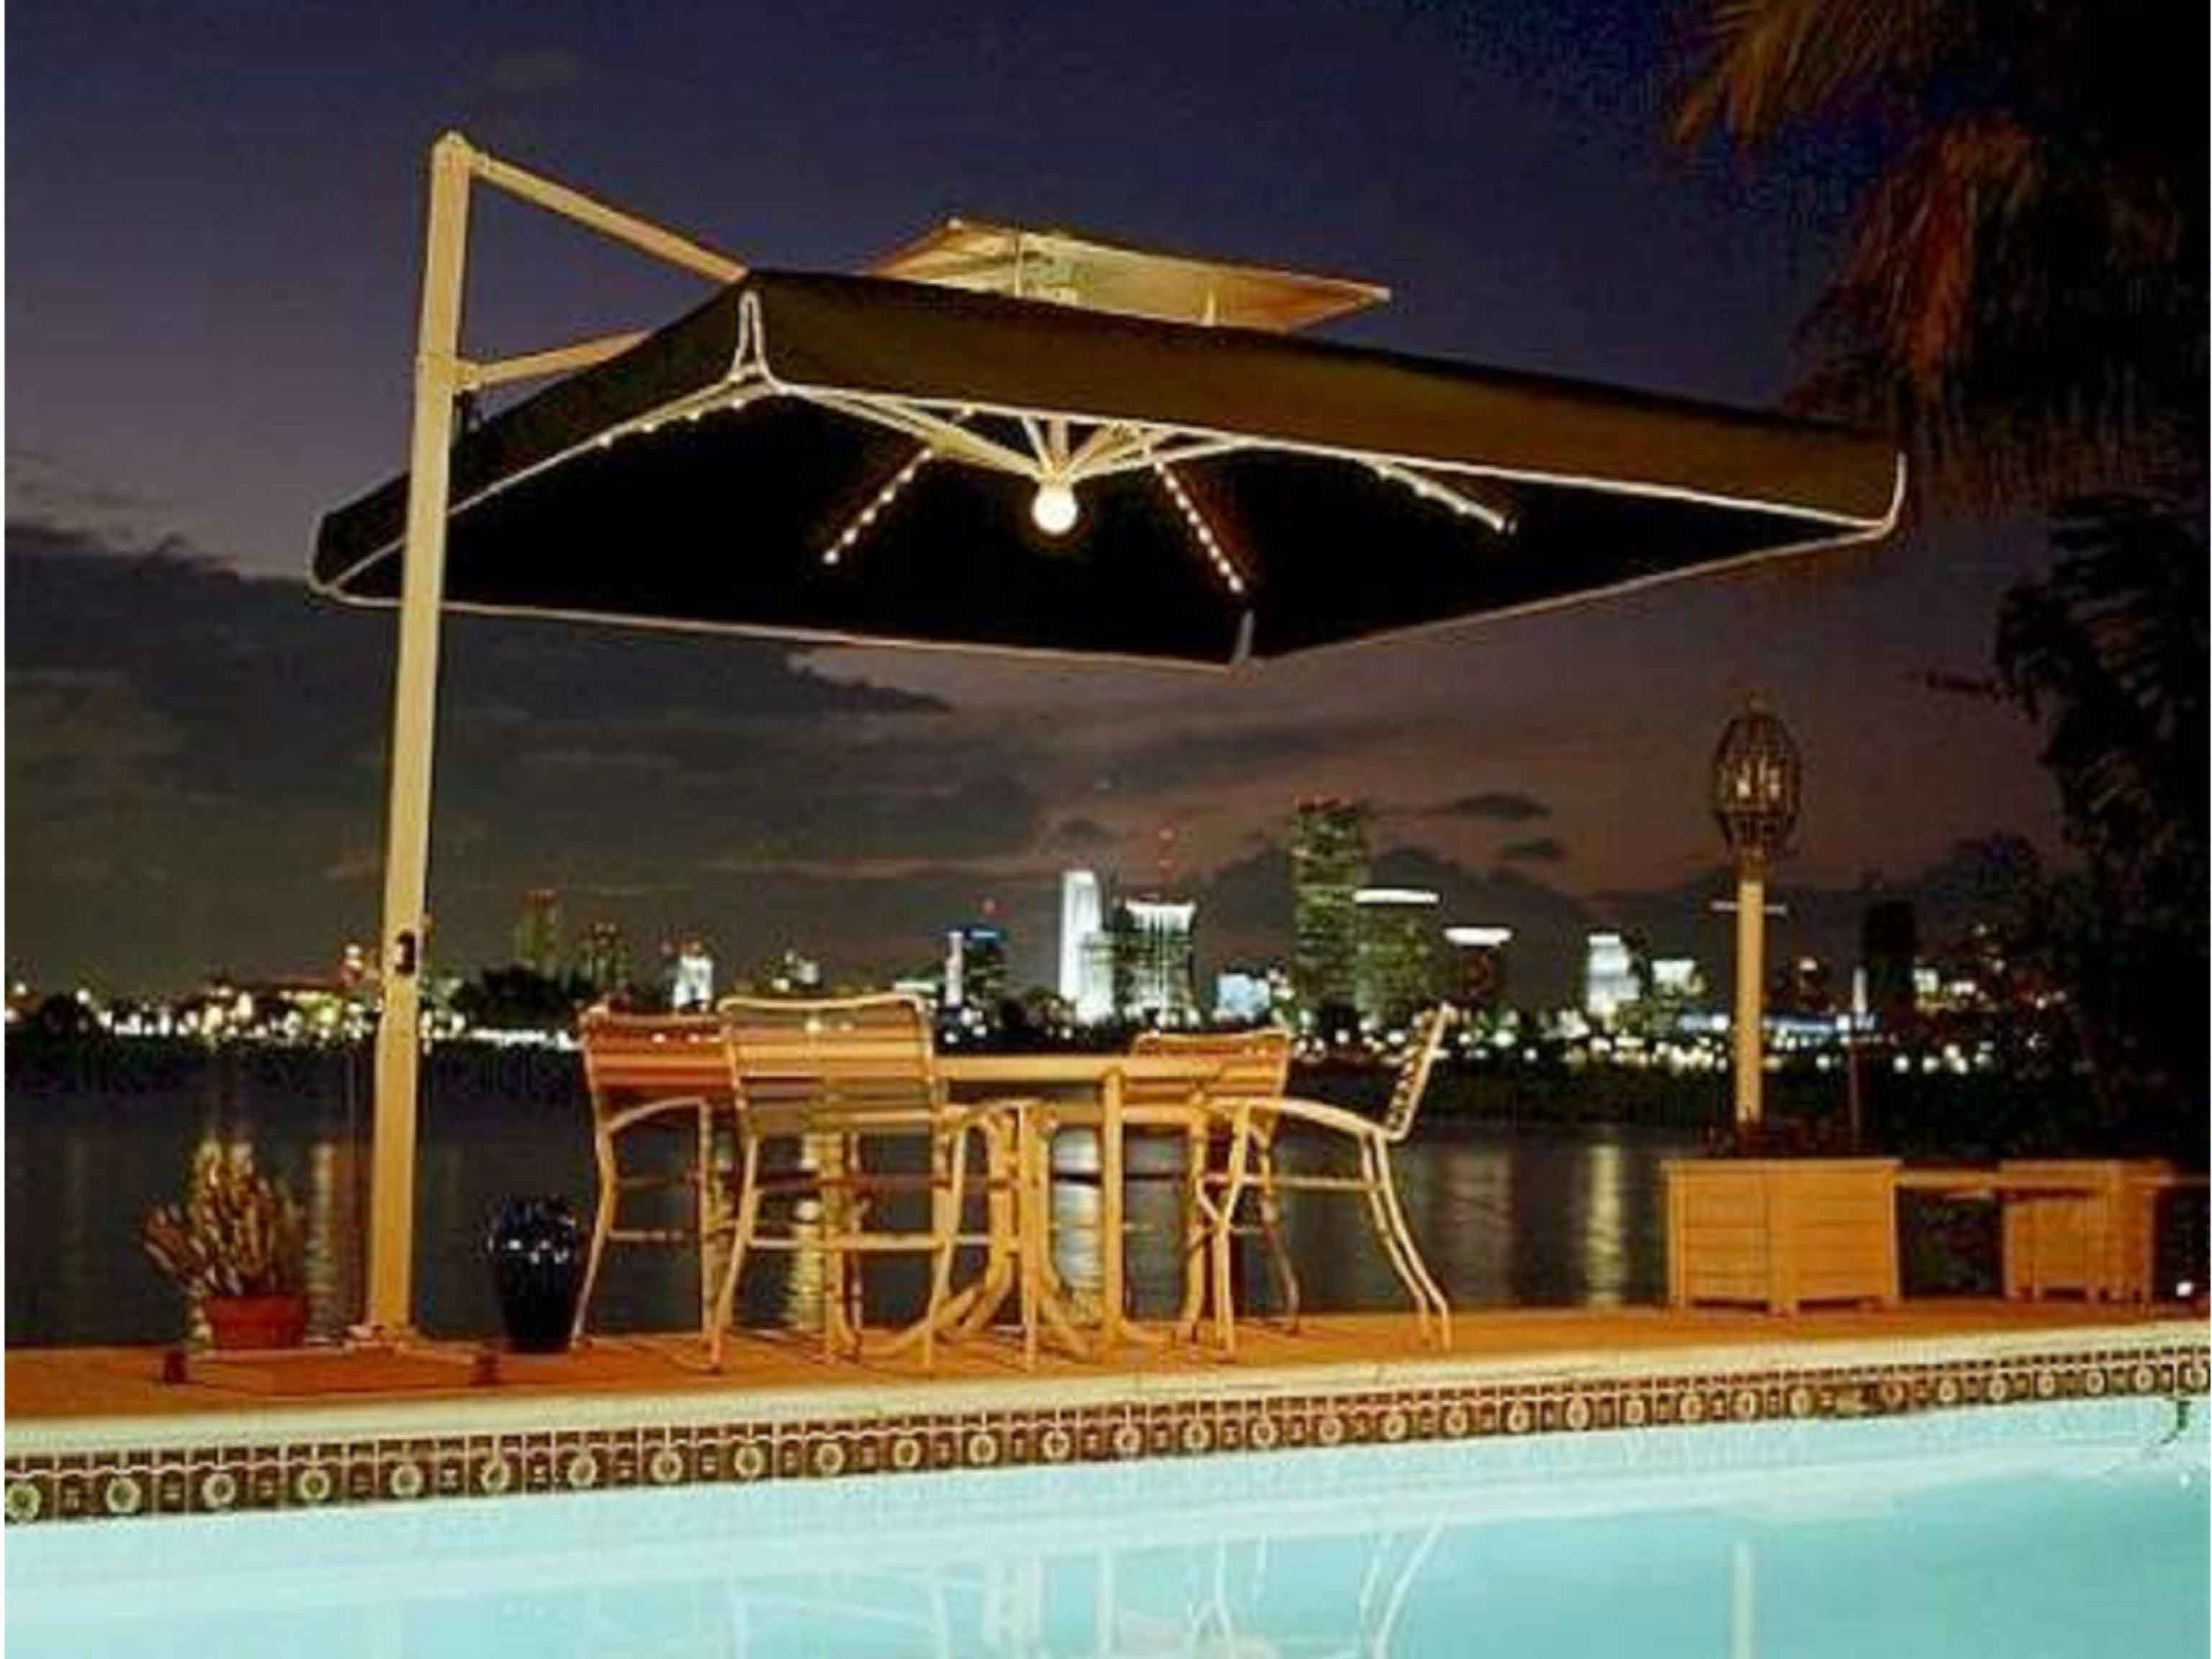 Famous Patio Umbrellas With Solar Led Lights With Furniture: Patio Umbrellas Home Depot Bedroom Light Bathroom Light (View 6 of 20)